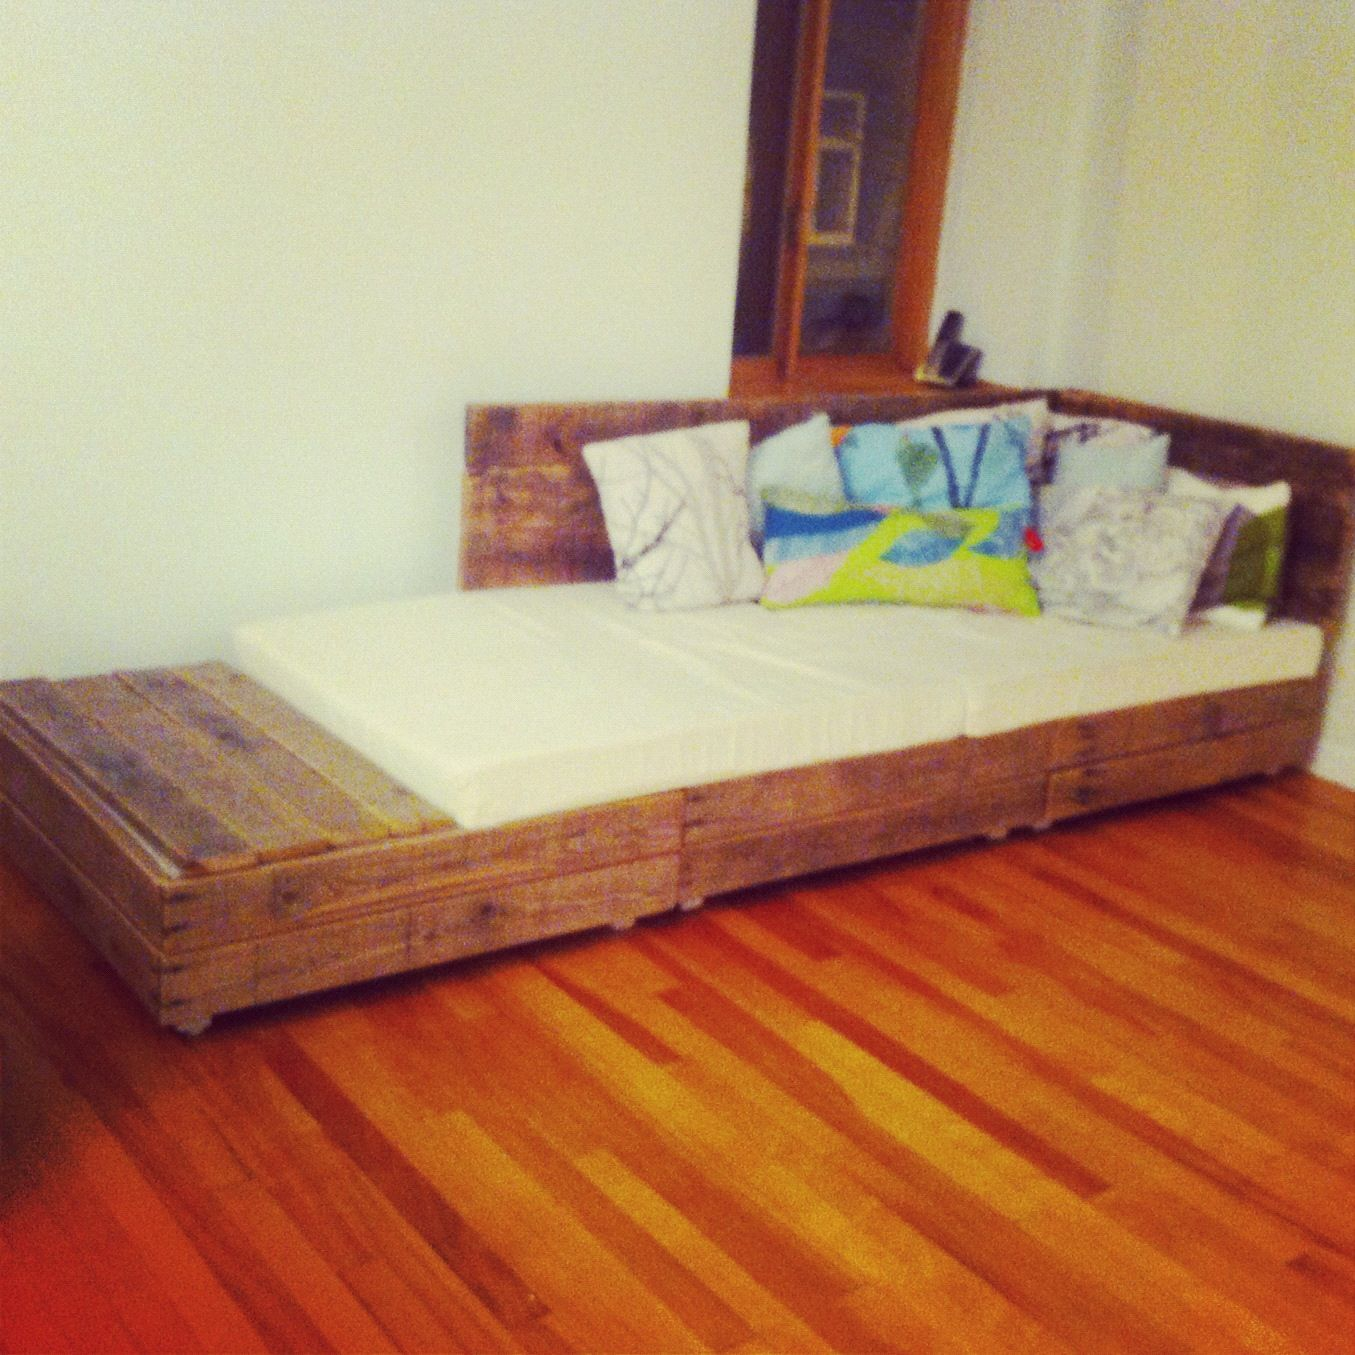 diy pallet couch instructions